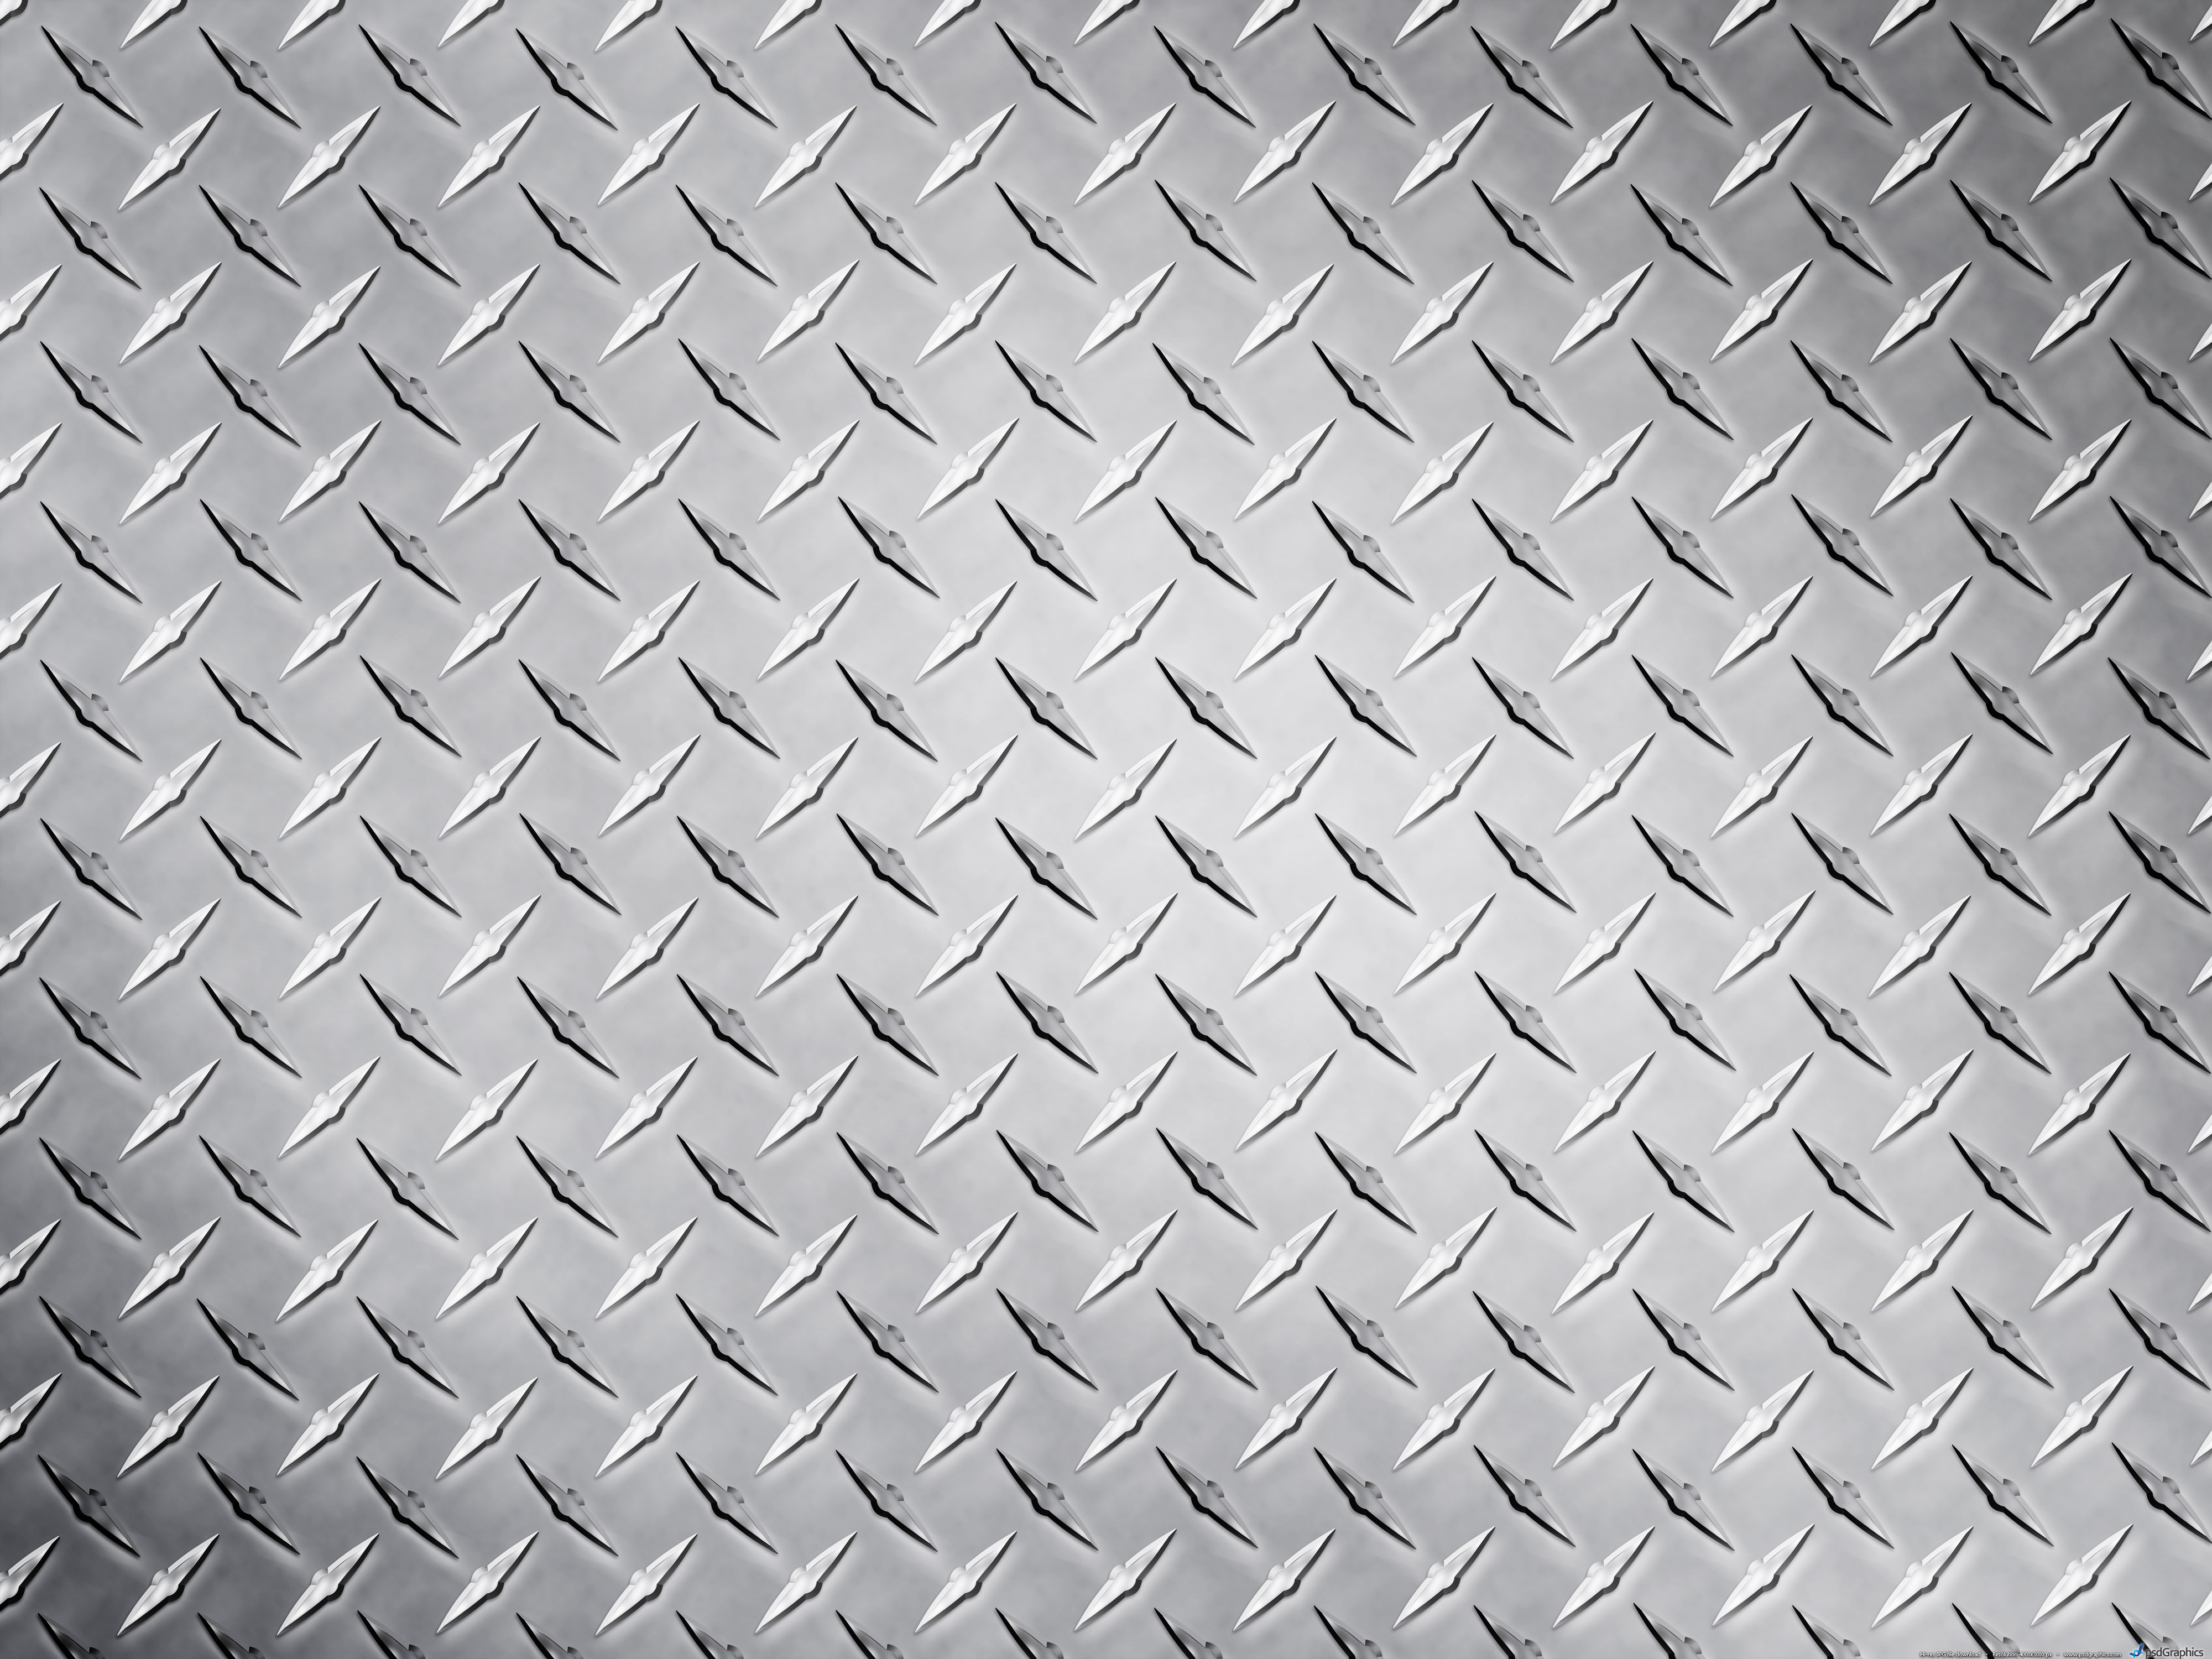 Metal Diamond Plate Texture Psdgraphics